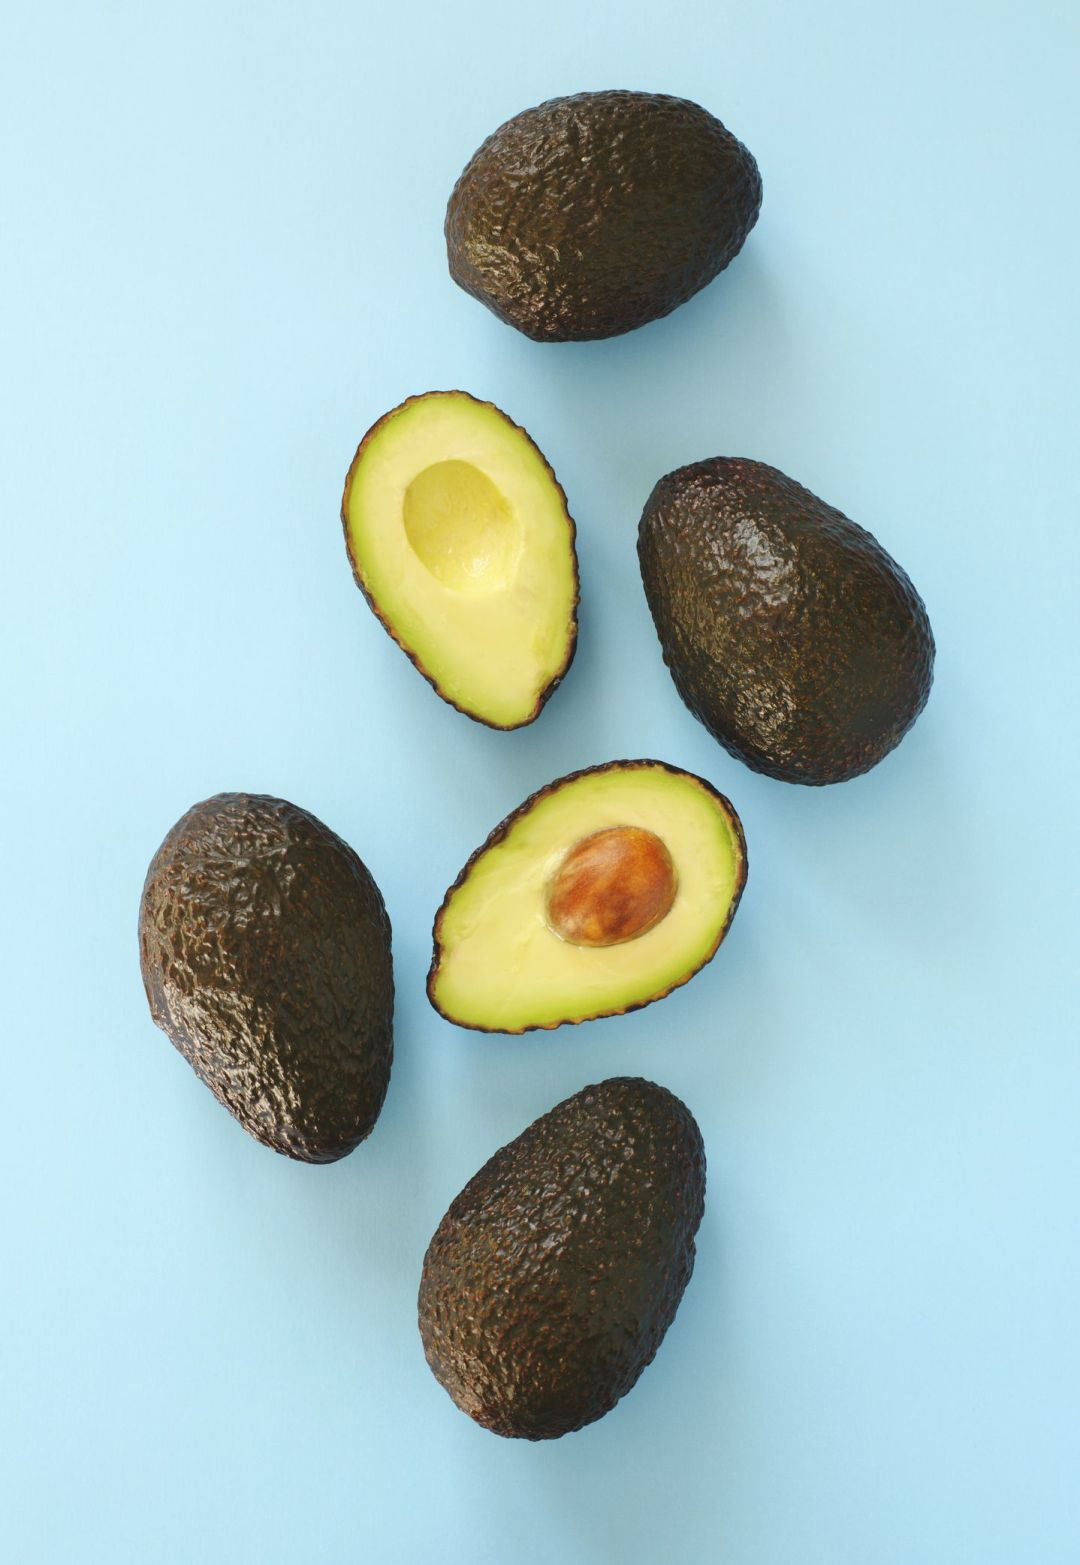 Avocado halves and whole on a blue speckle, top viev.